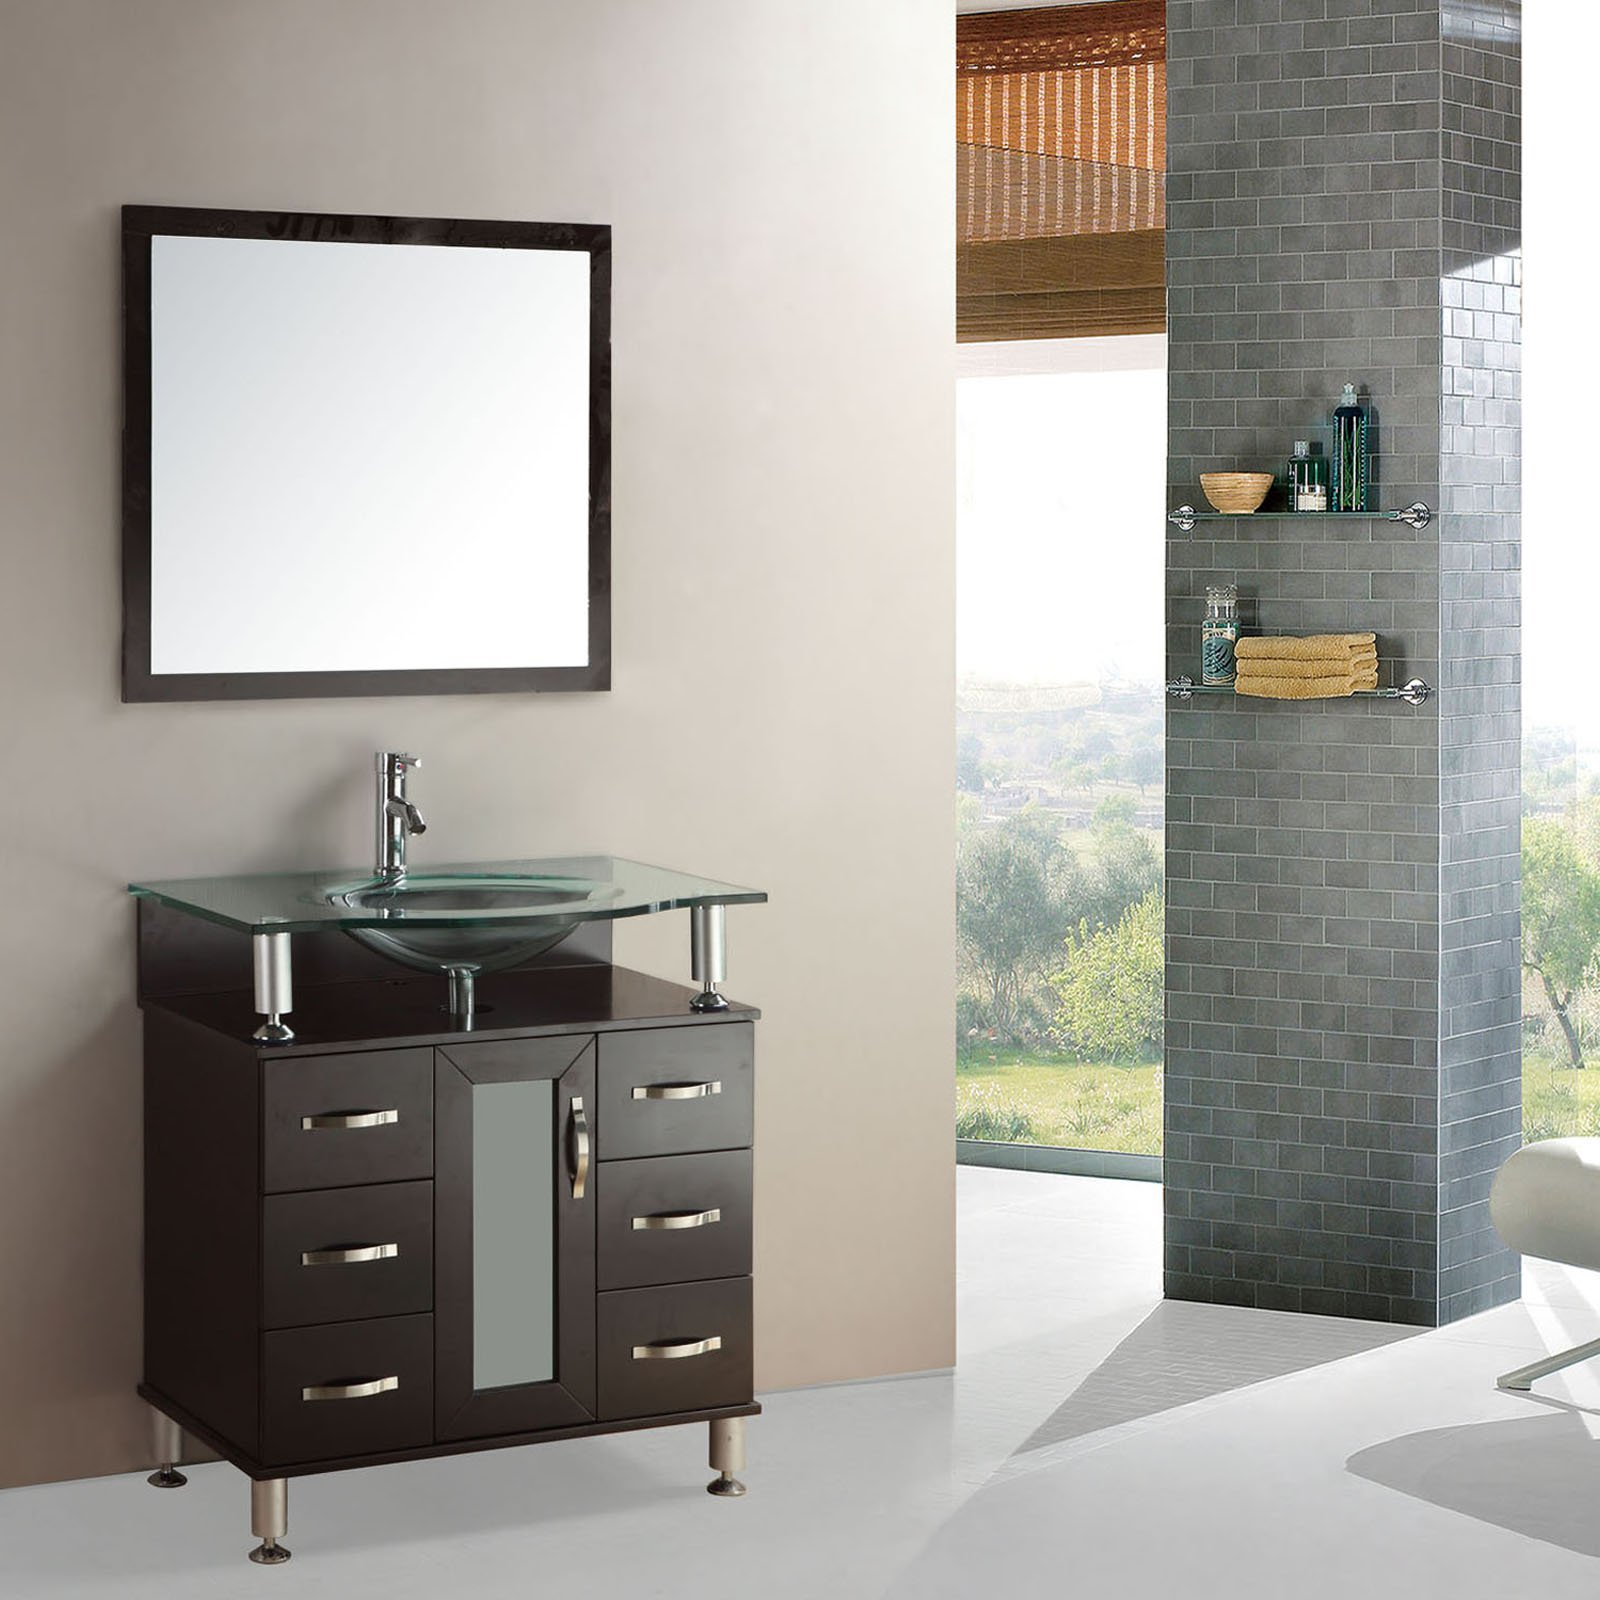 Kokols 9142a 36 in. Single Sink Bathroom Vanity